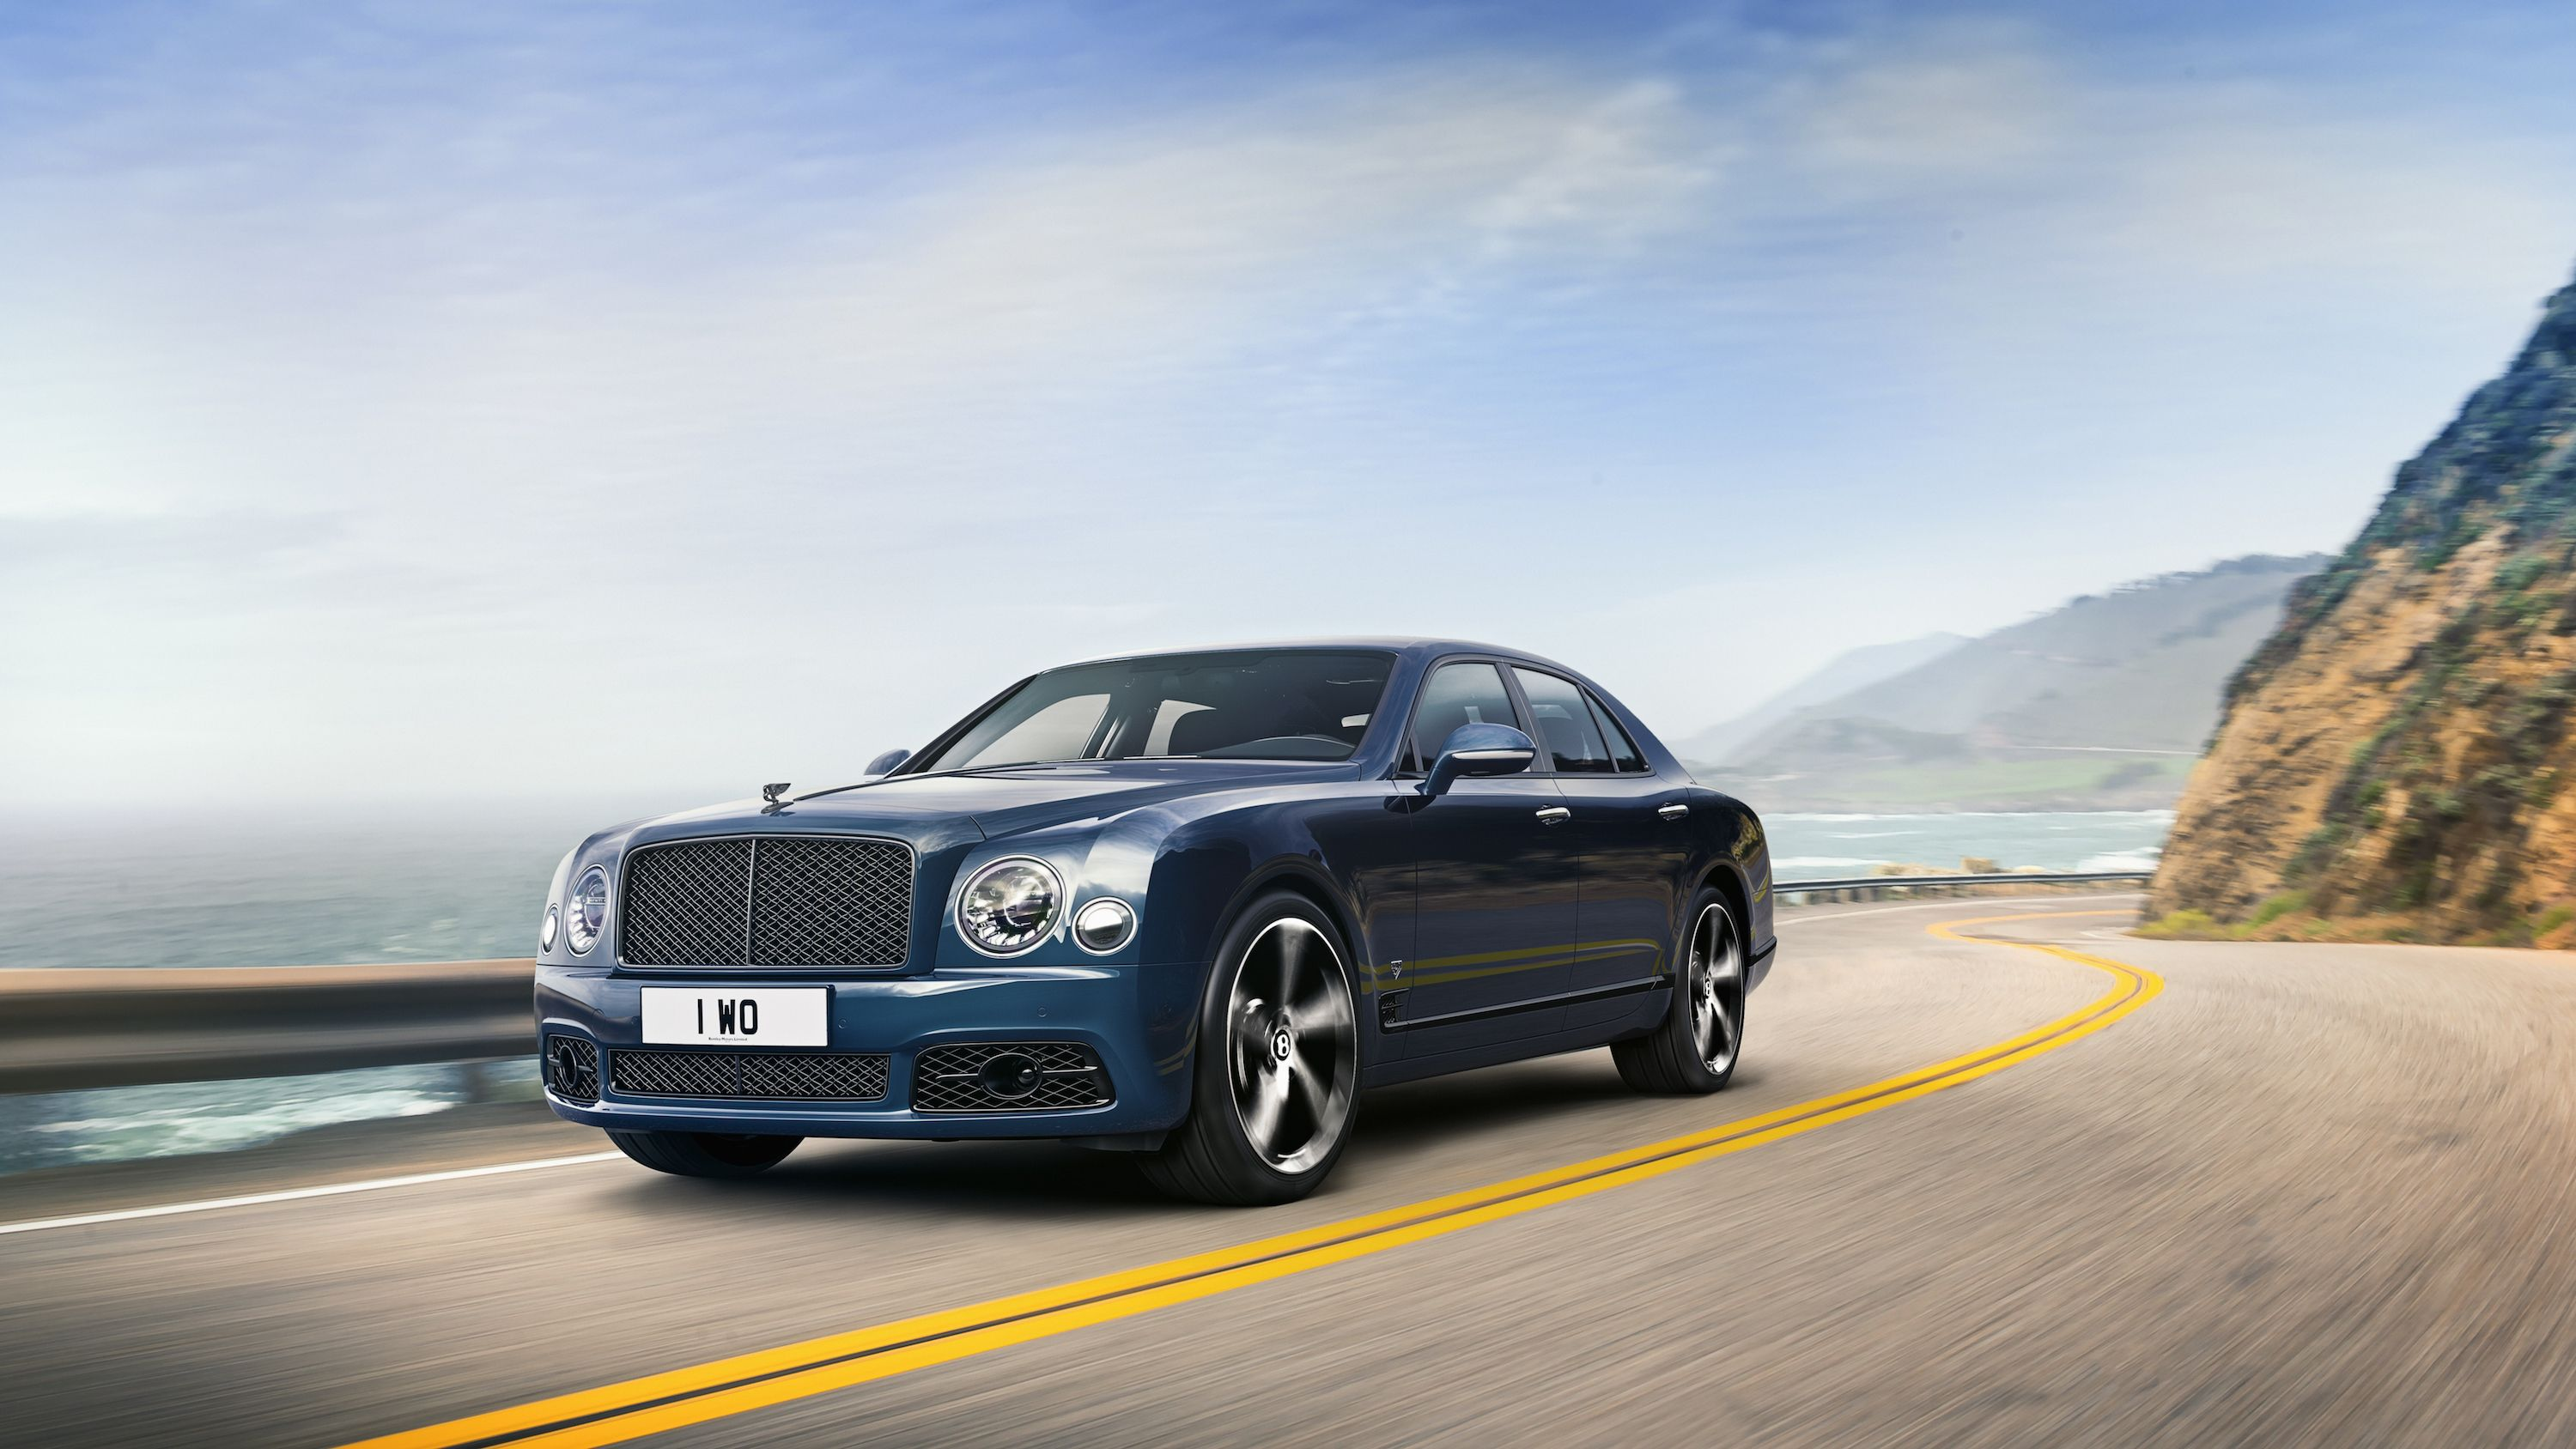 Bentley Is Sending Off the Mulsanne With a Special Edition Honoring Its Unique 6.75-L V-8